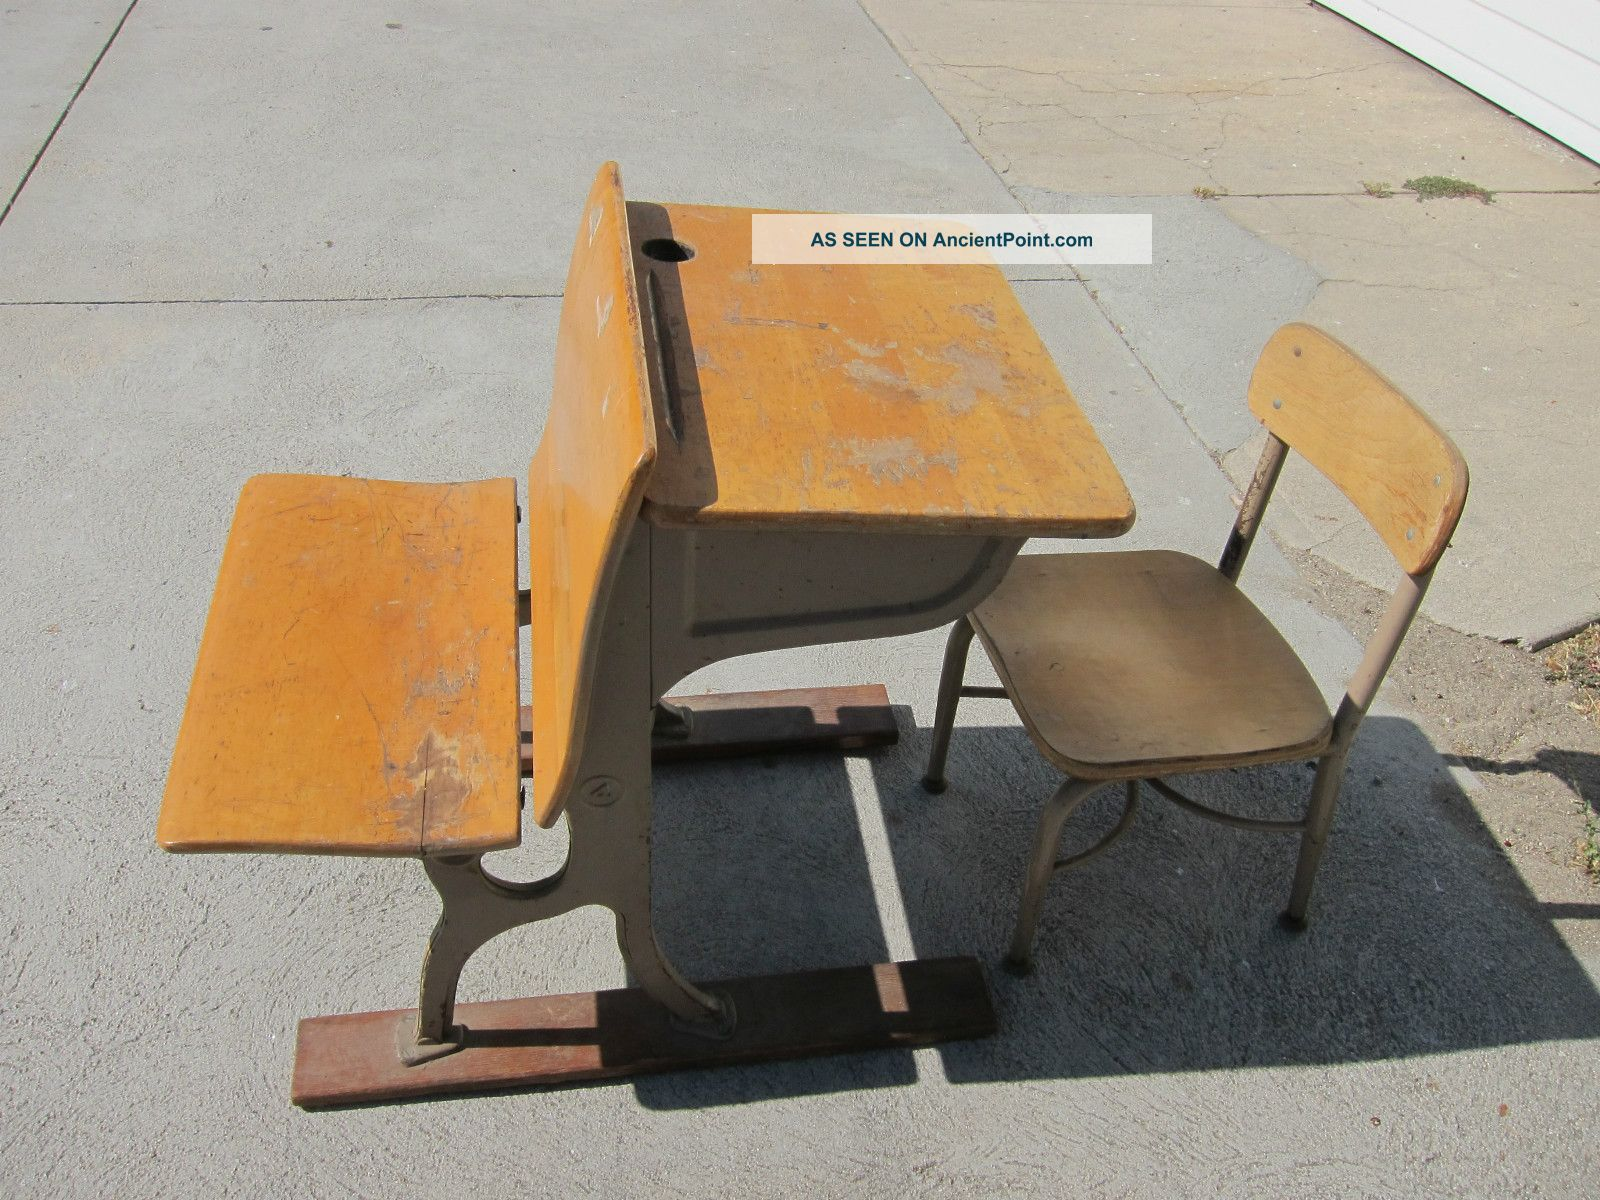 Vintage Childs School Desk And Chair 1900-1950 photo